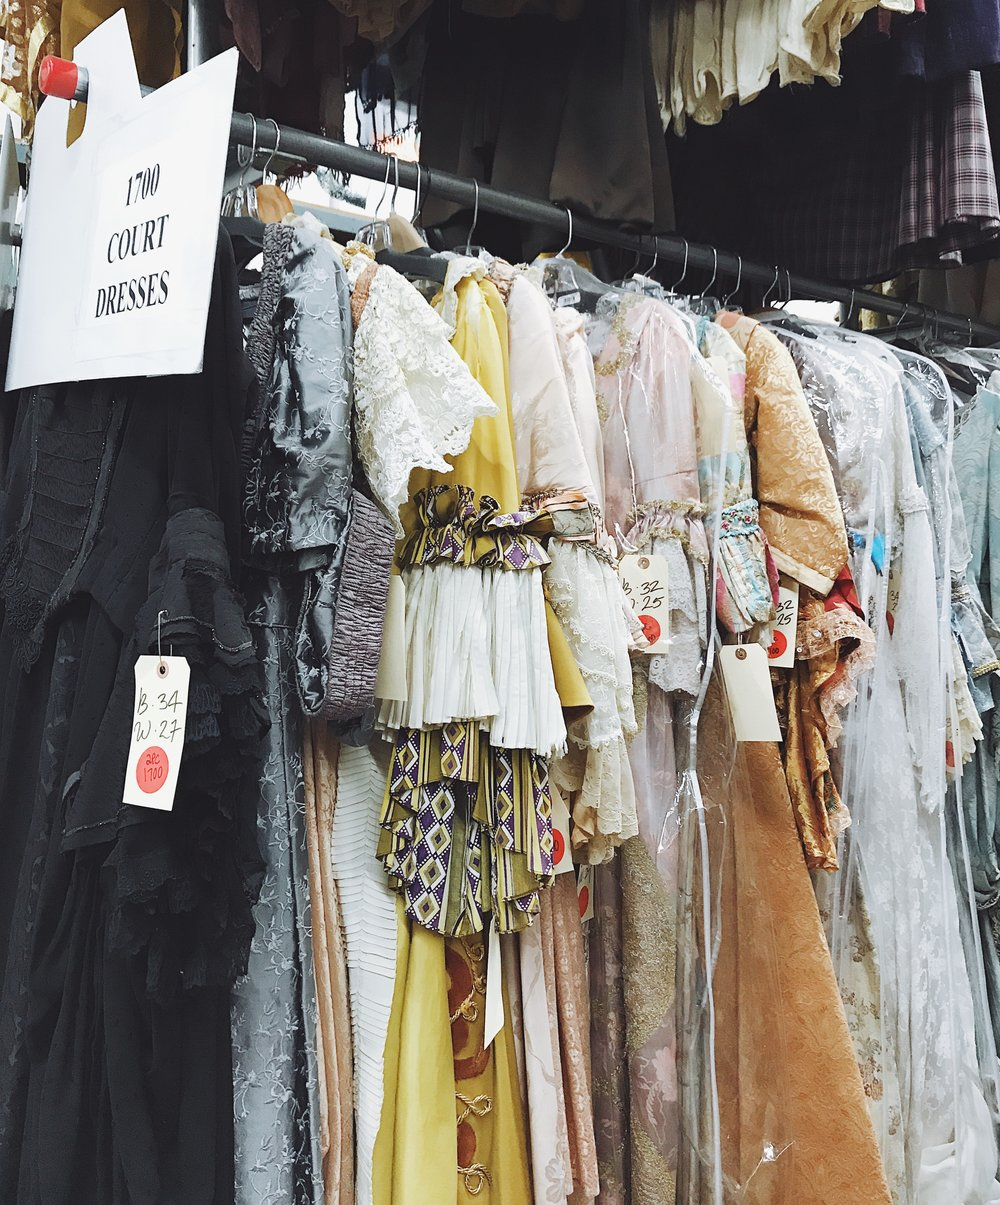 """18th Century-style """"court dresses"""" in the Western Costume warehouse.  Photo via  Finding Lost Angeles  (2018)."""